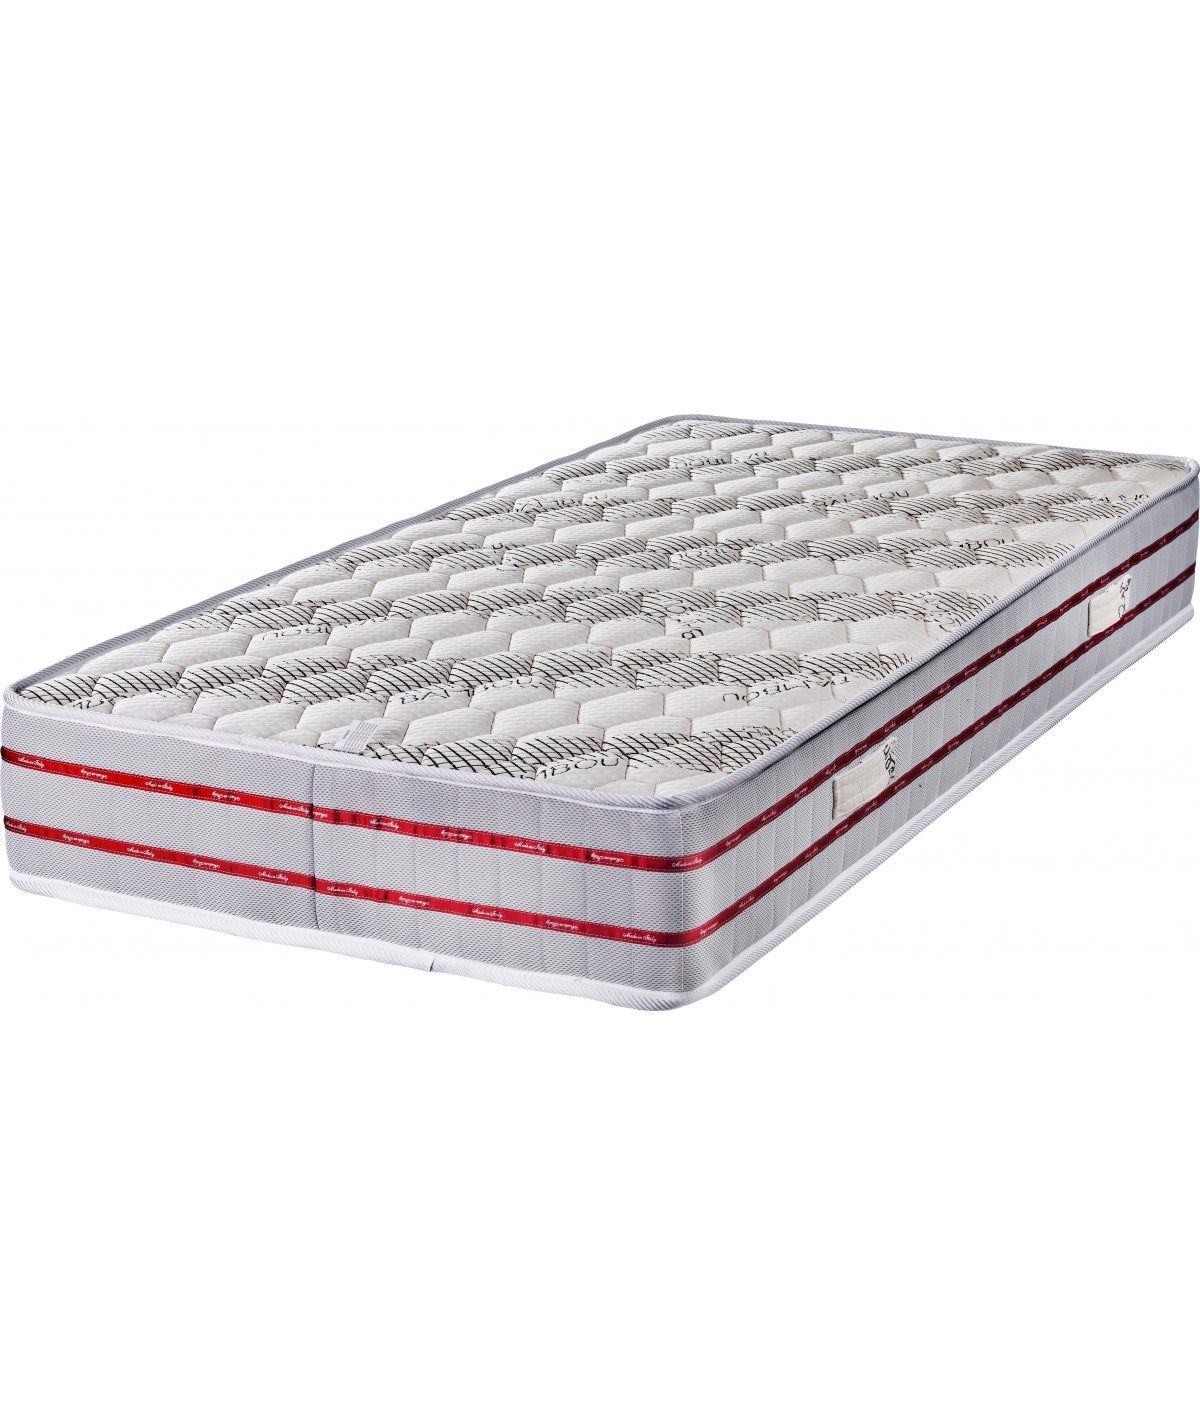 Bamboo Very Firm Mattress Fabric Bamboo Foam Polilattex Non-deformable - 24 cm - Orthopedic